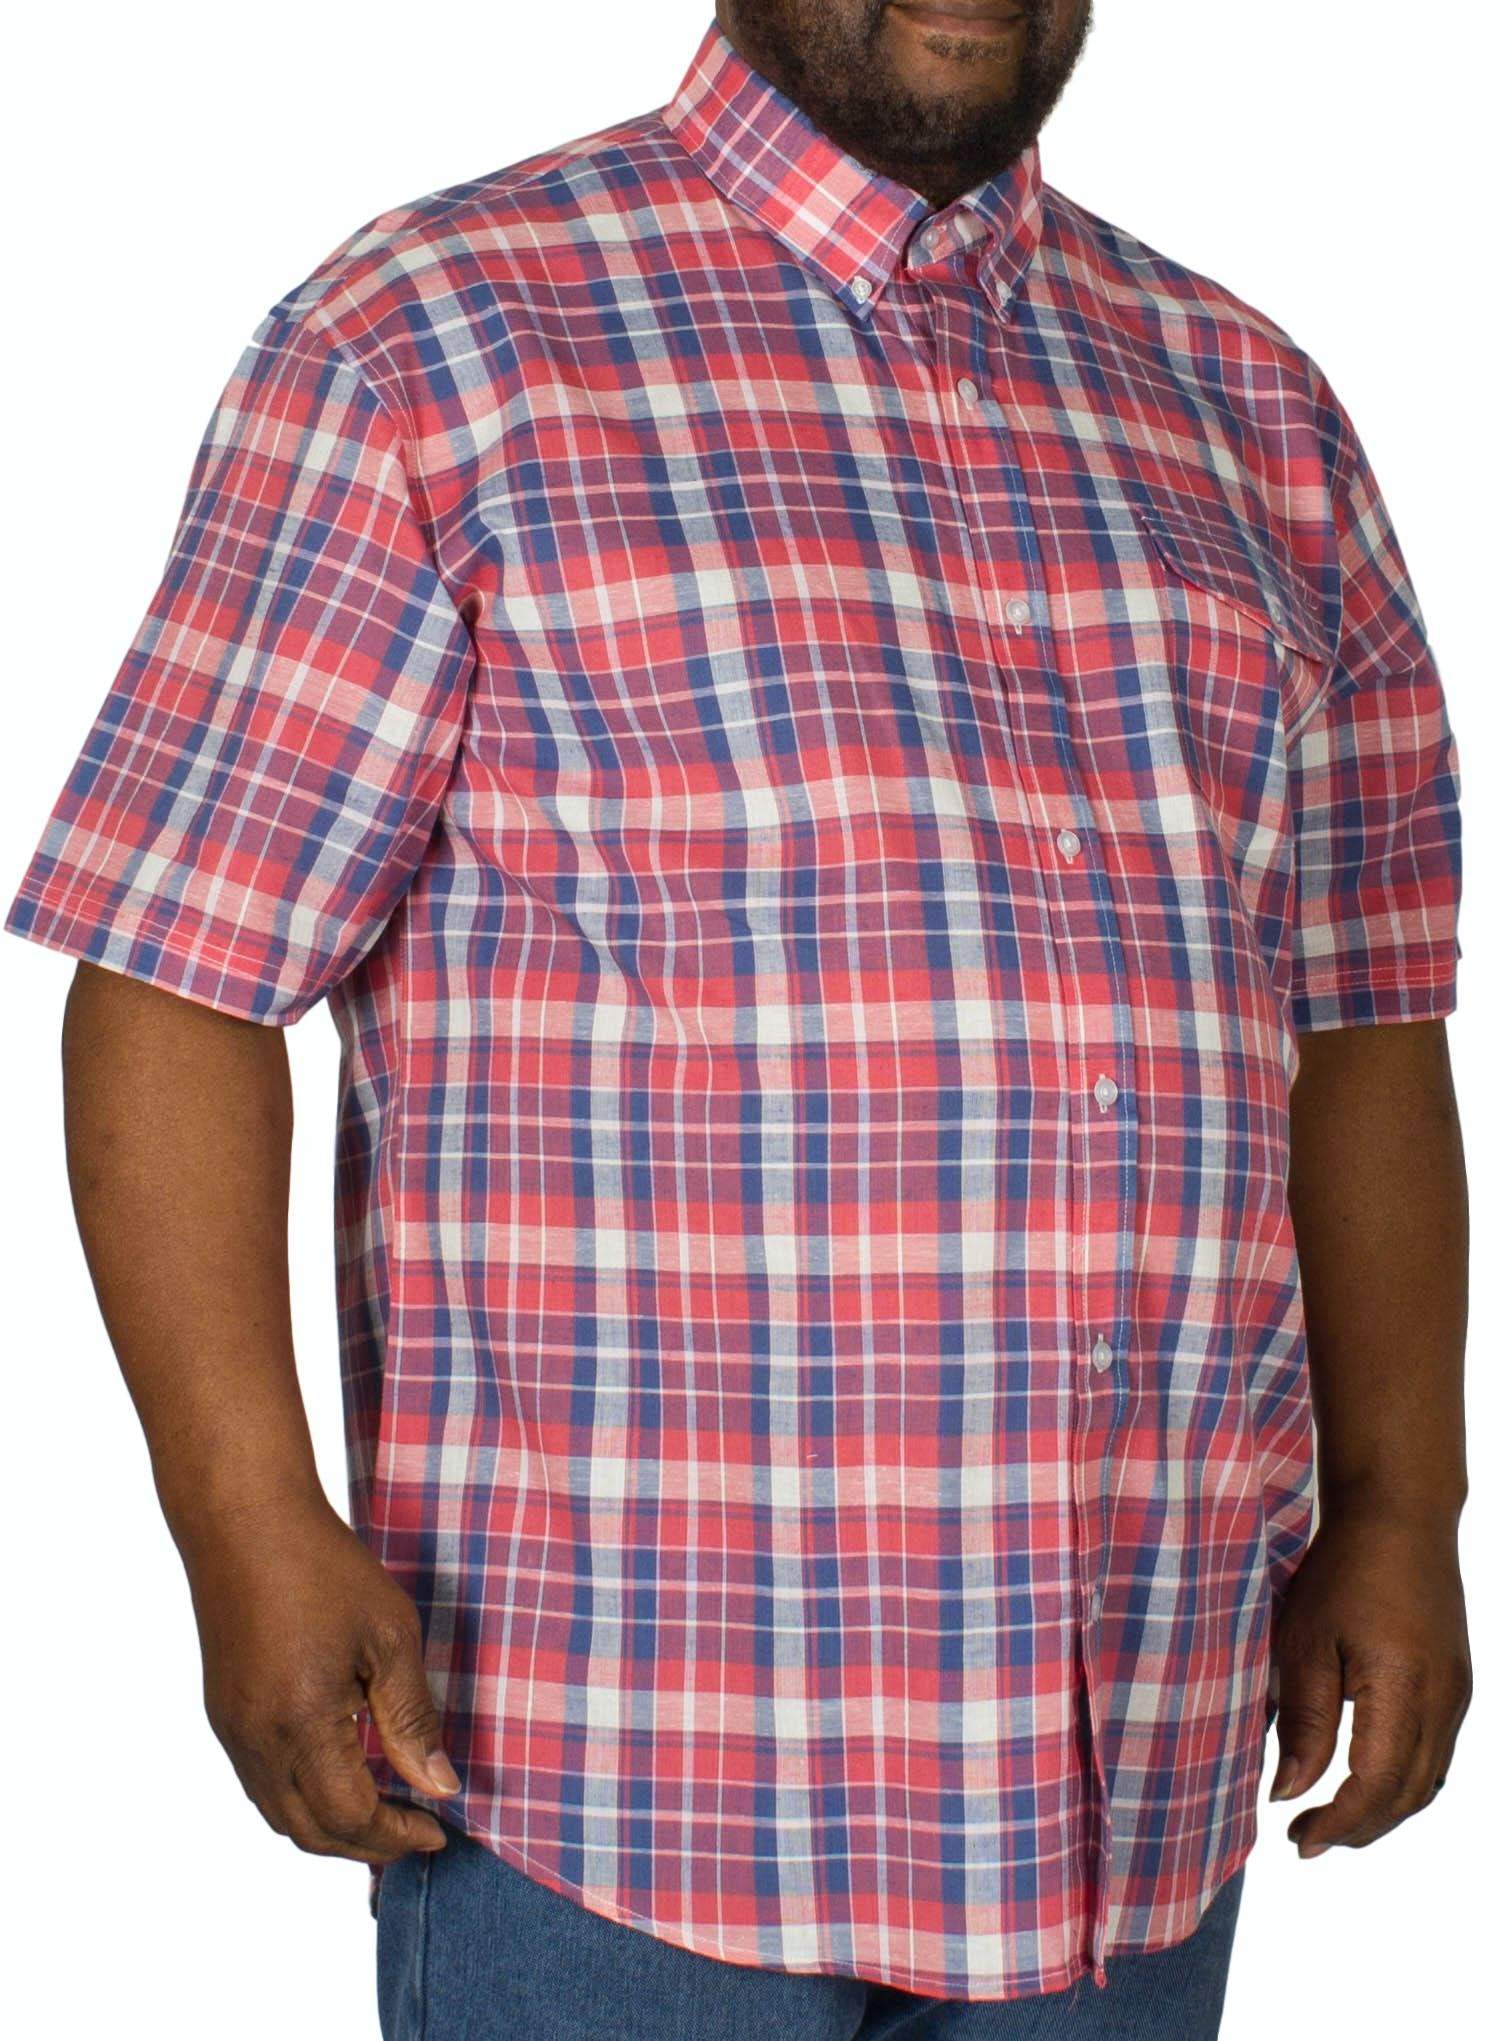 Espionage Check Short Sleeve Shirt Coral/Blue